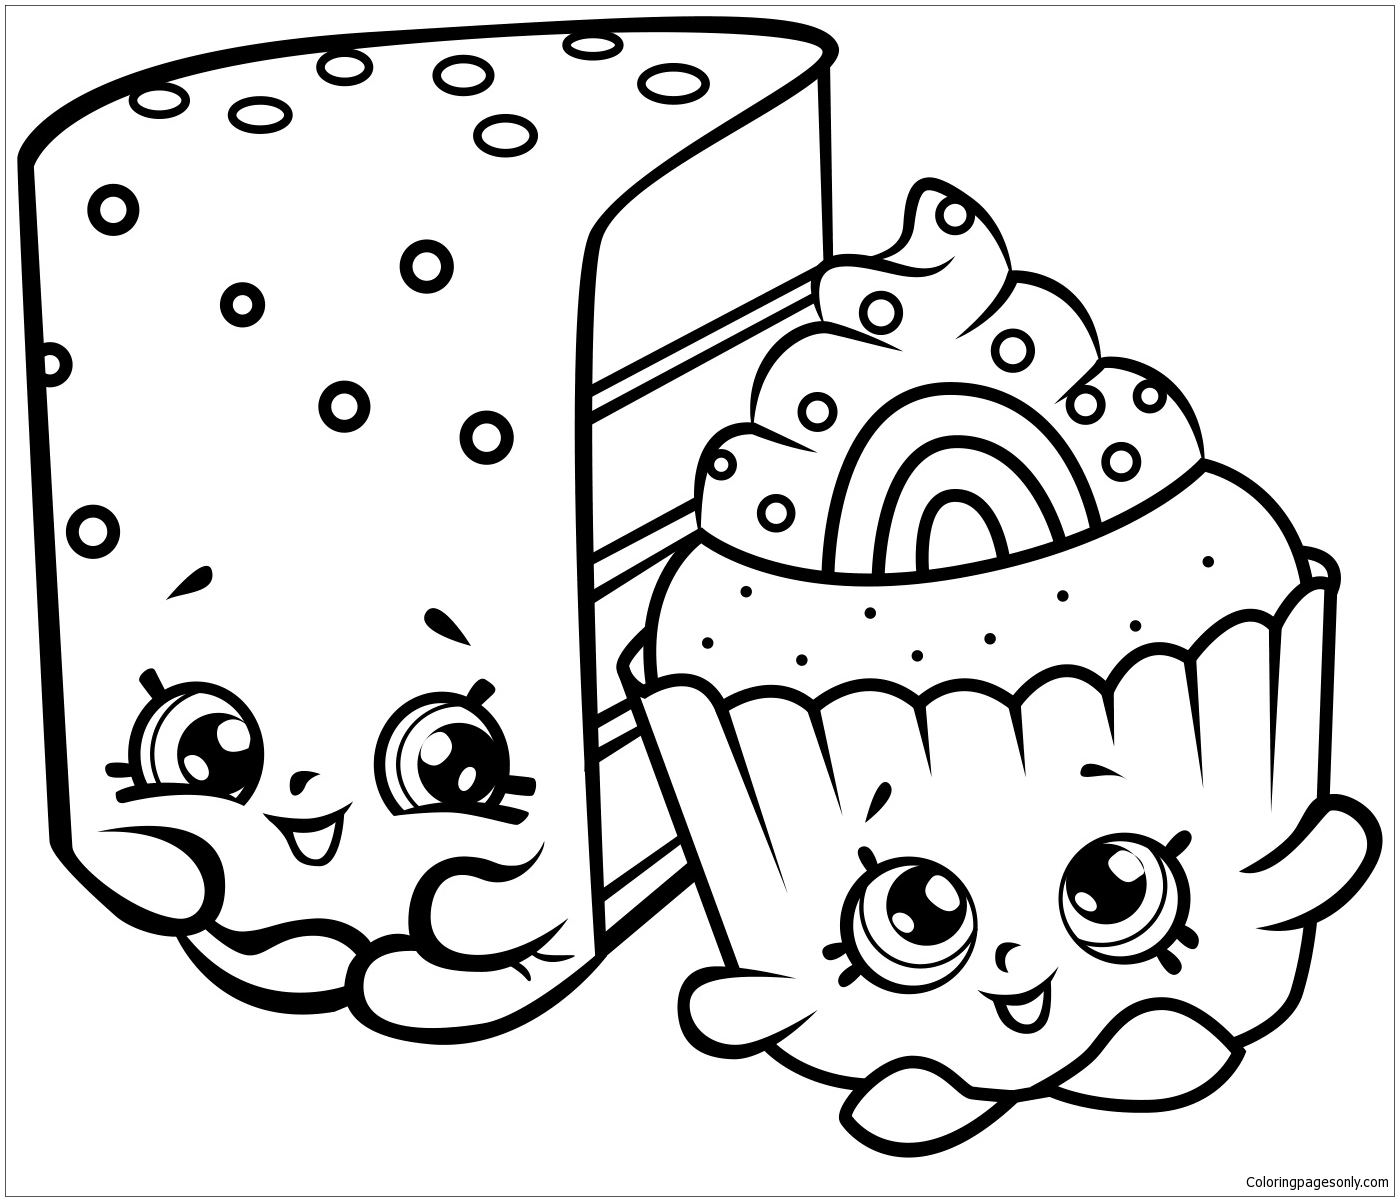 Cute Cakes Shopkins Coloring Page - Free Coloring Pages Online